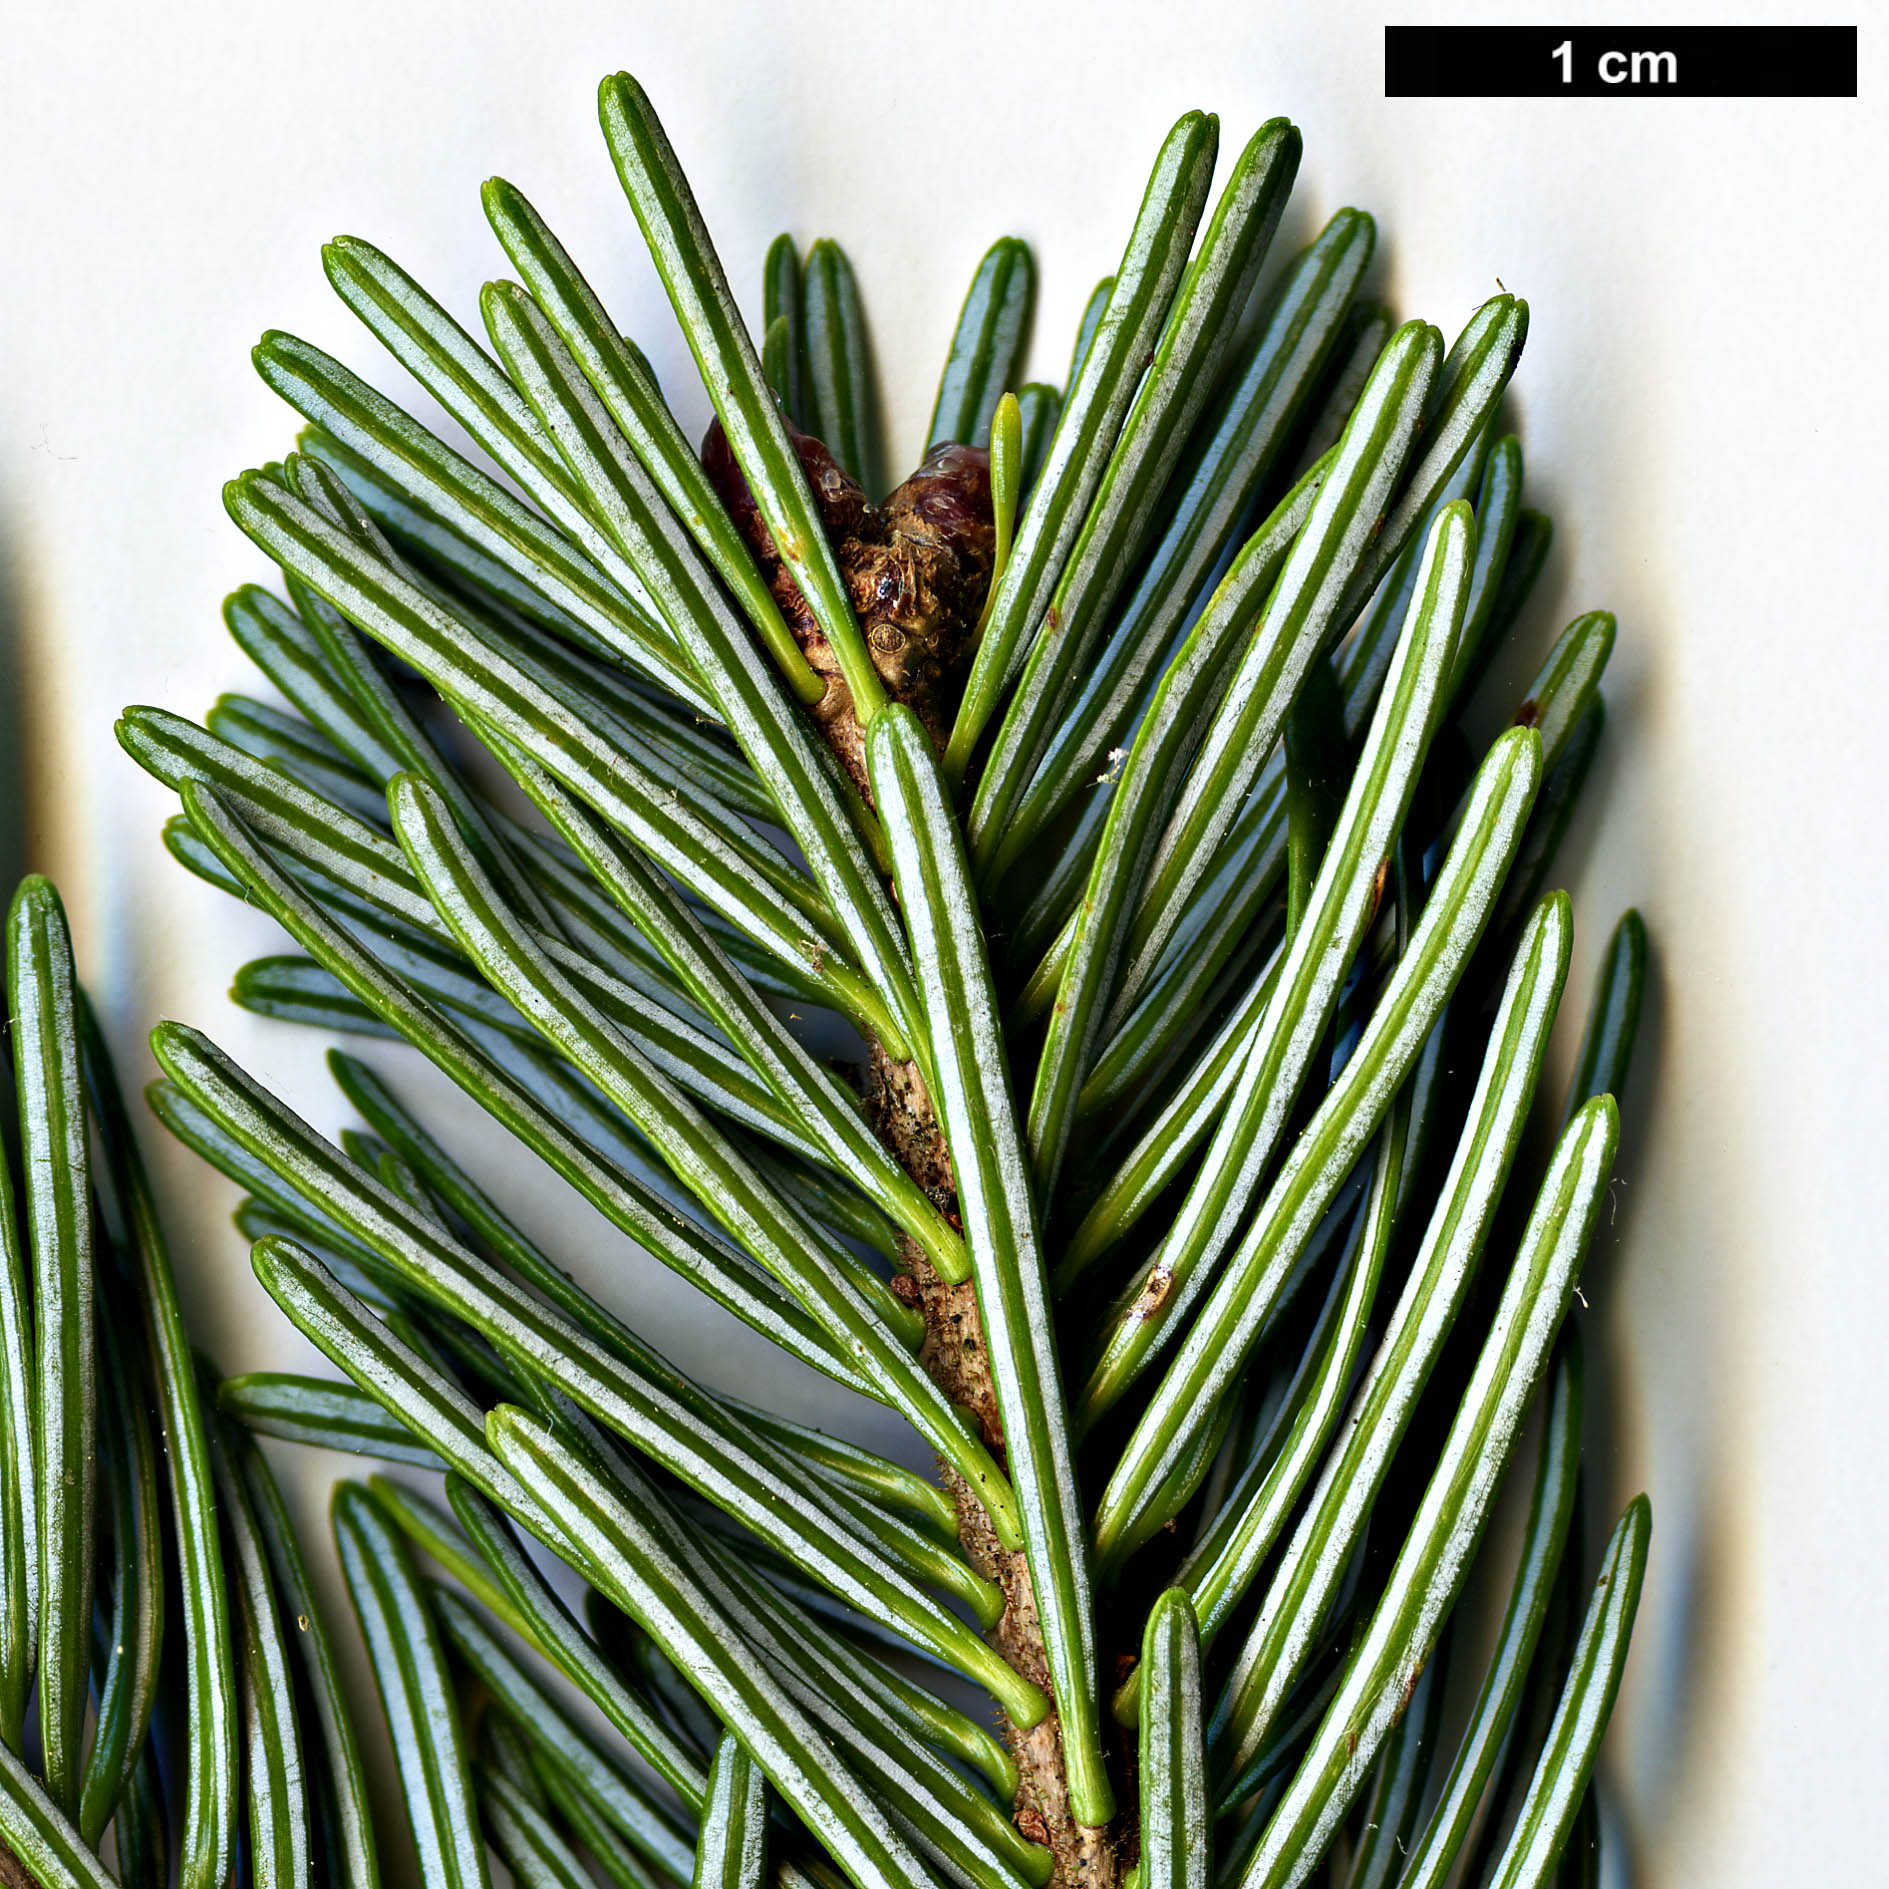 High resolution image: Family: Pinaceae - Genus: Abies - Taxon: nephrolepis